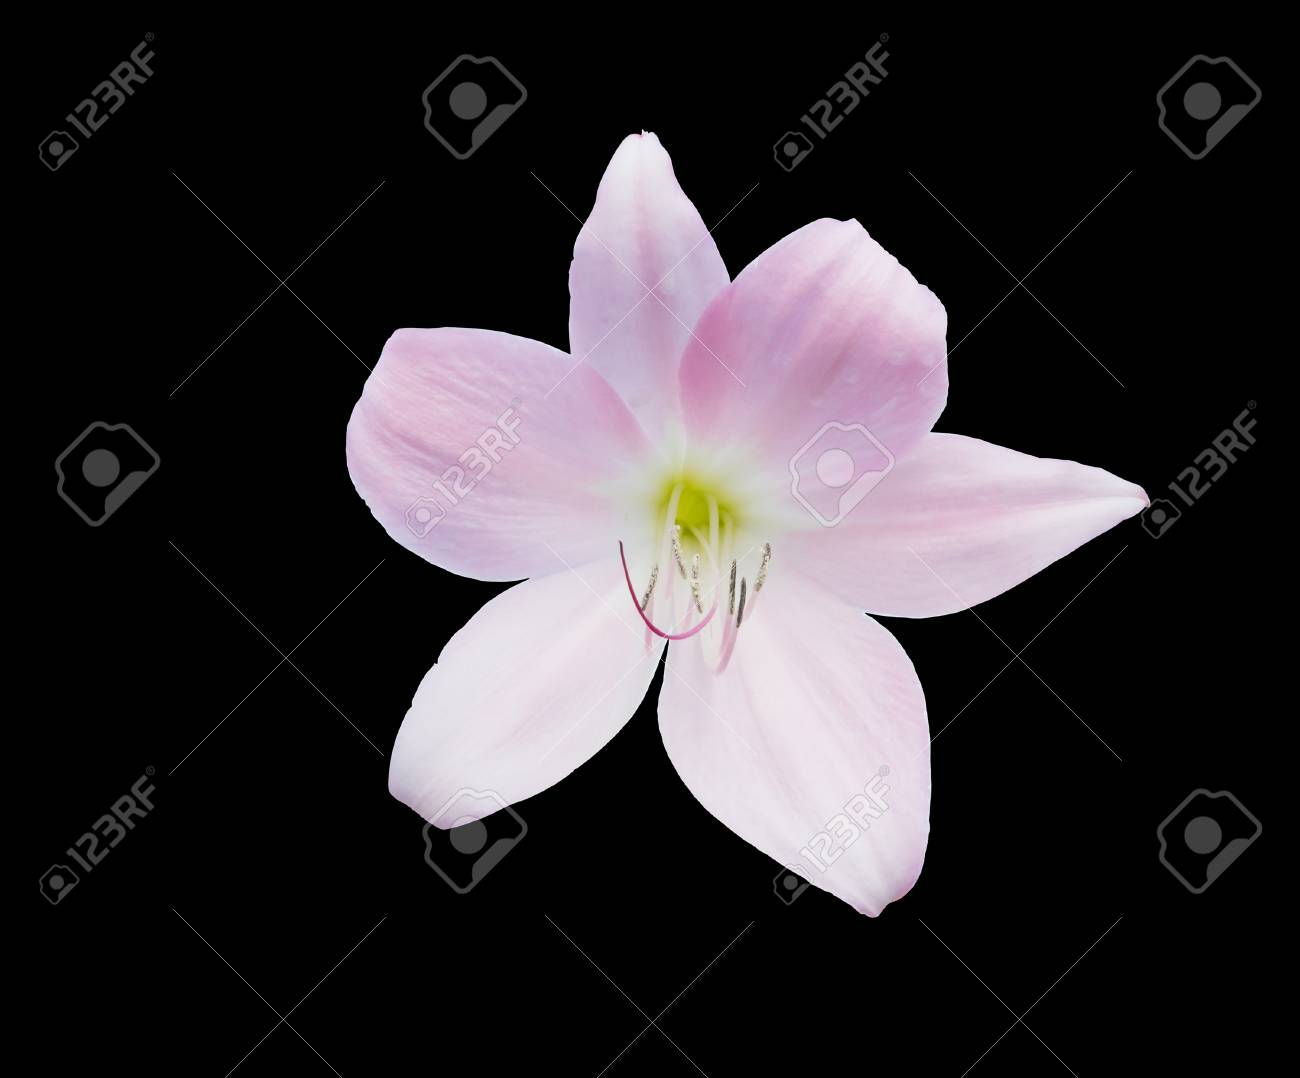 Pink lily flower closeup isolated on black stock photo picture and pink lily flower closeup isolated on black stock photo 37329935 izmirmasajfo